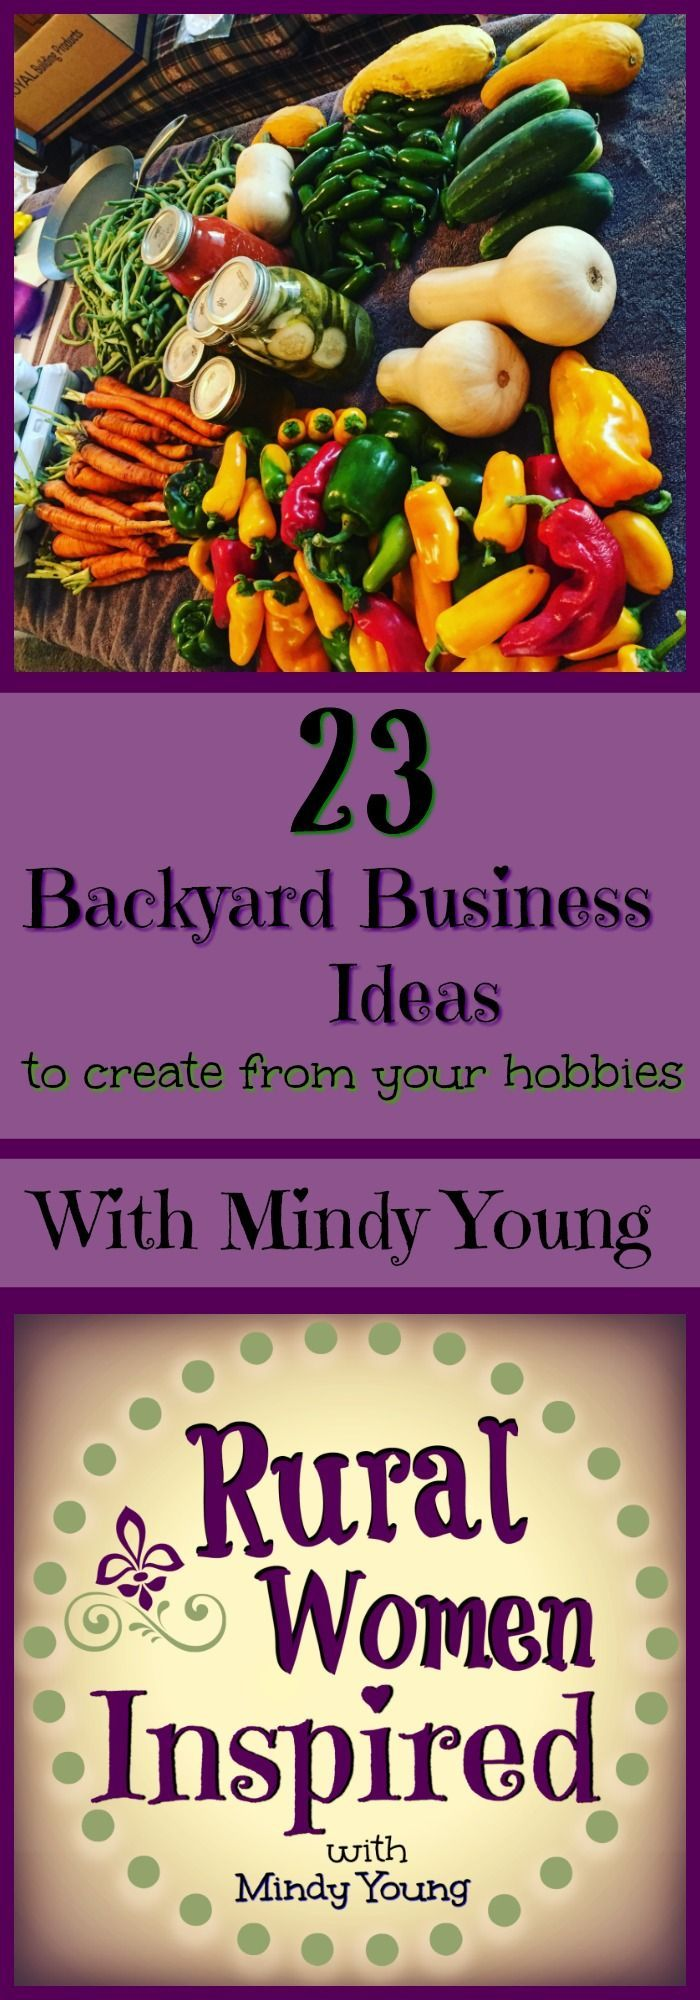 23 Backyard Business Ideas For You To Create From Hobbies